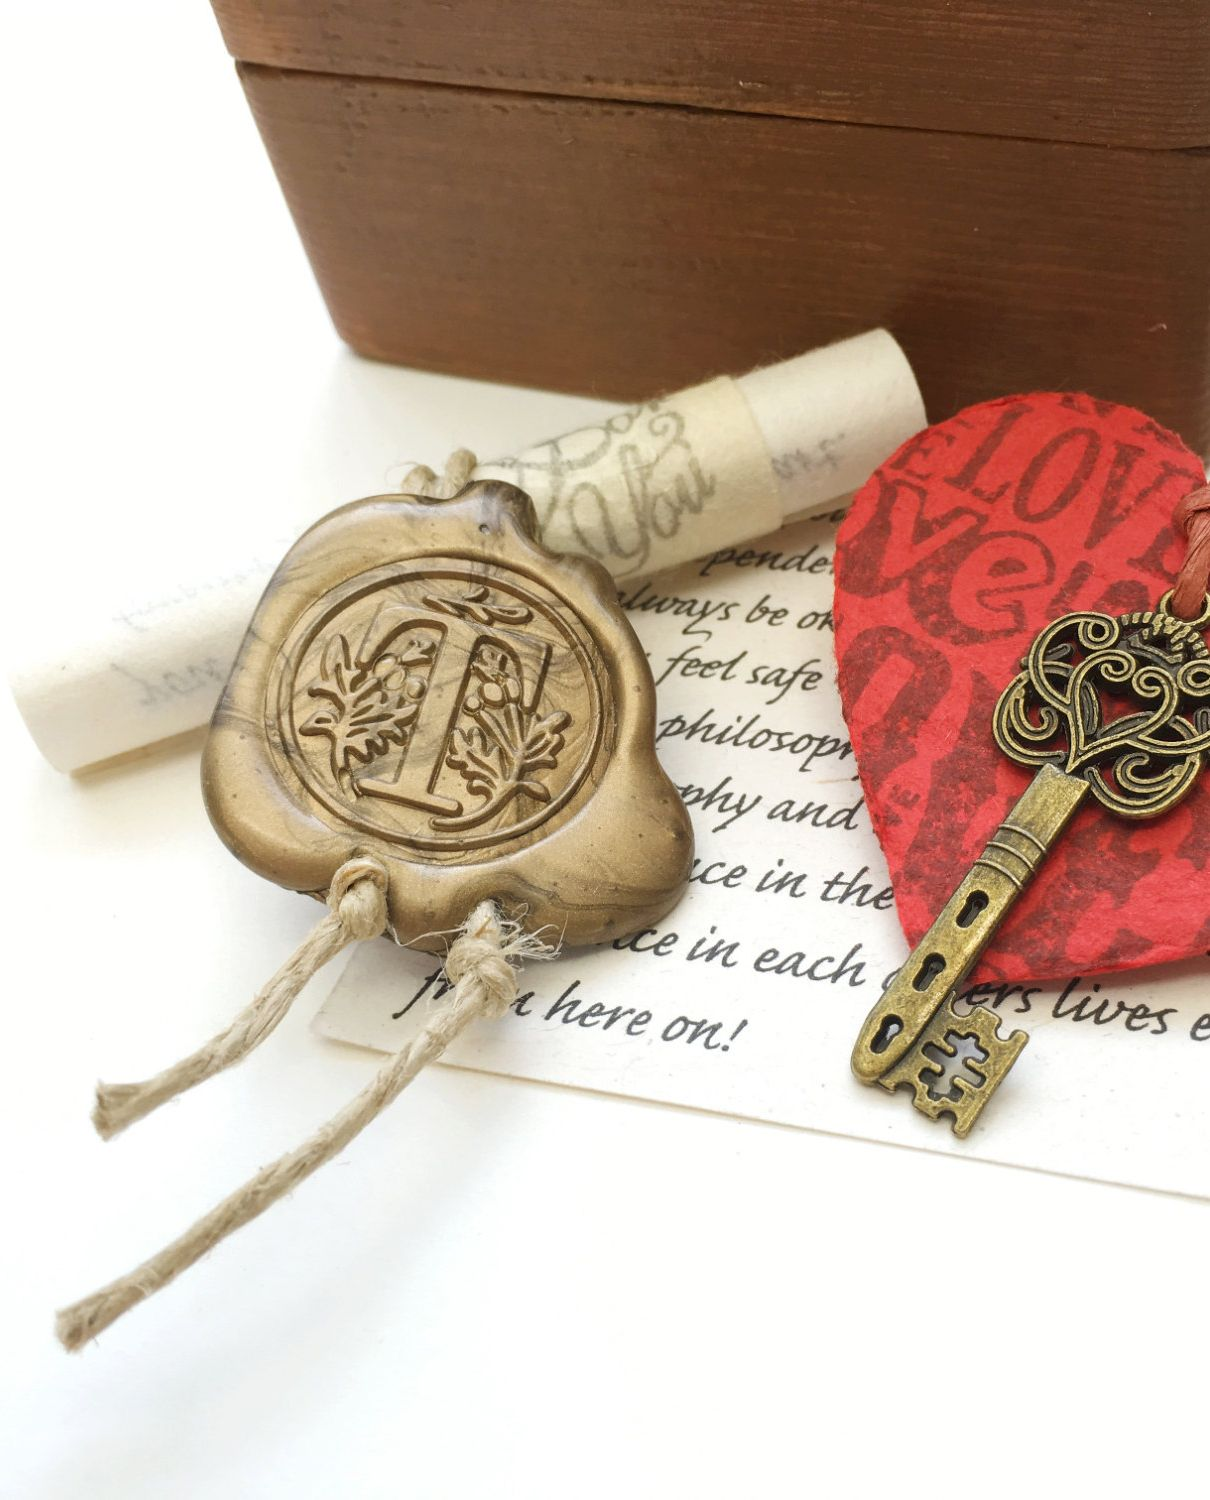 5th anniversary gift for him personalized love message